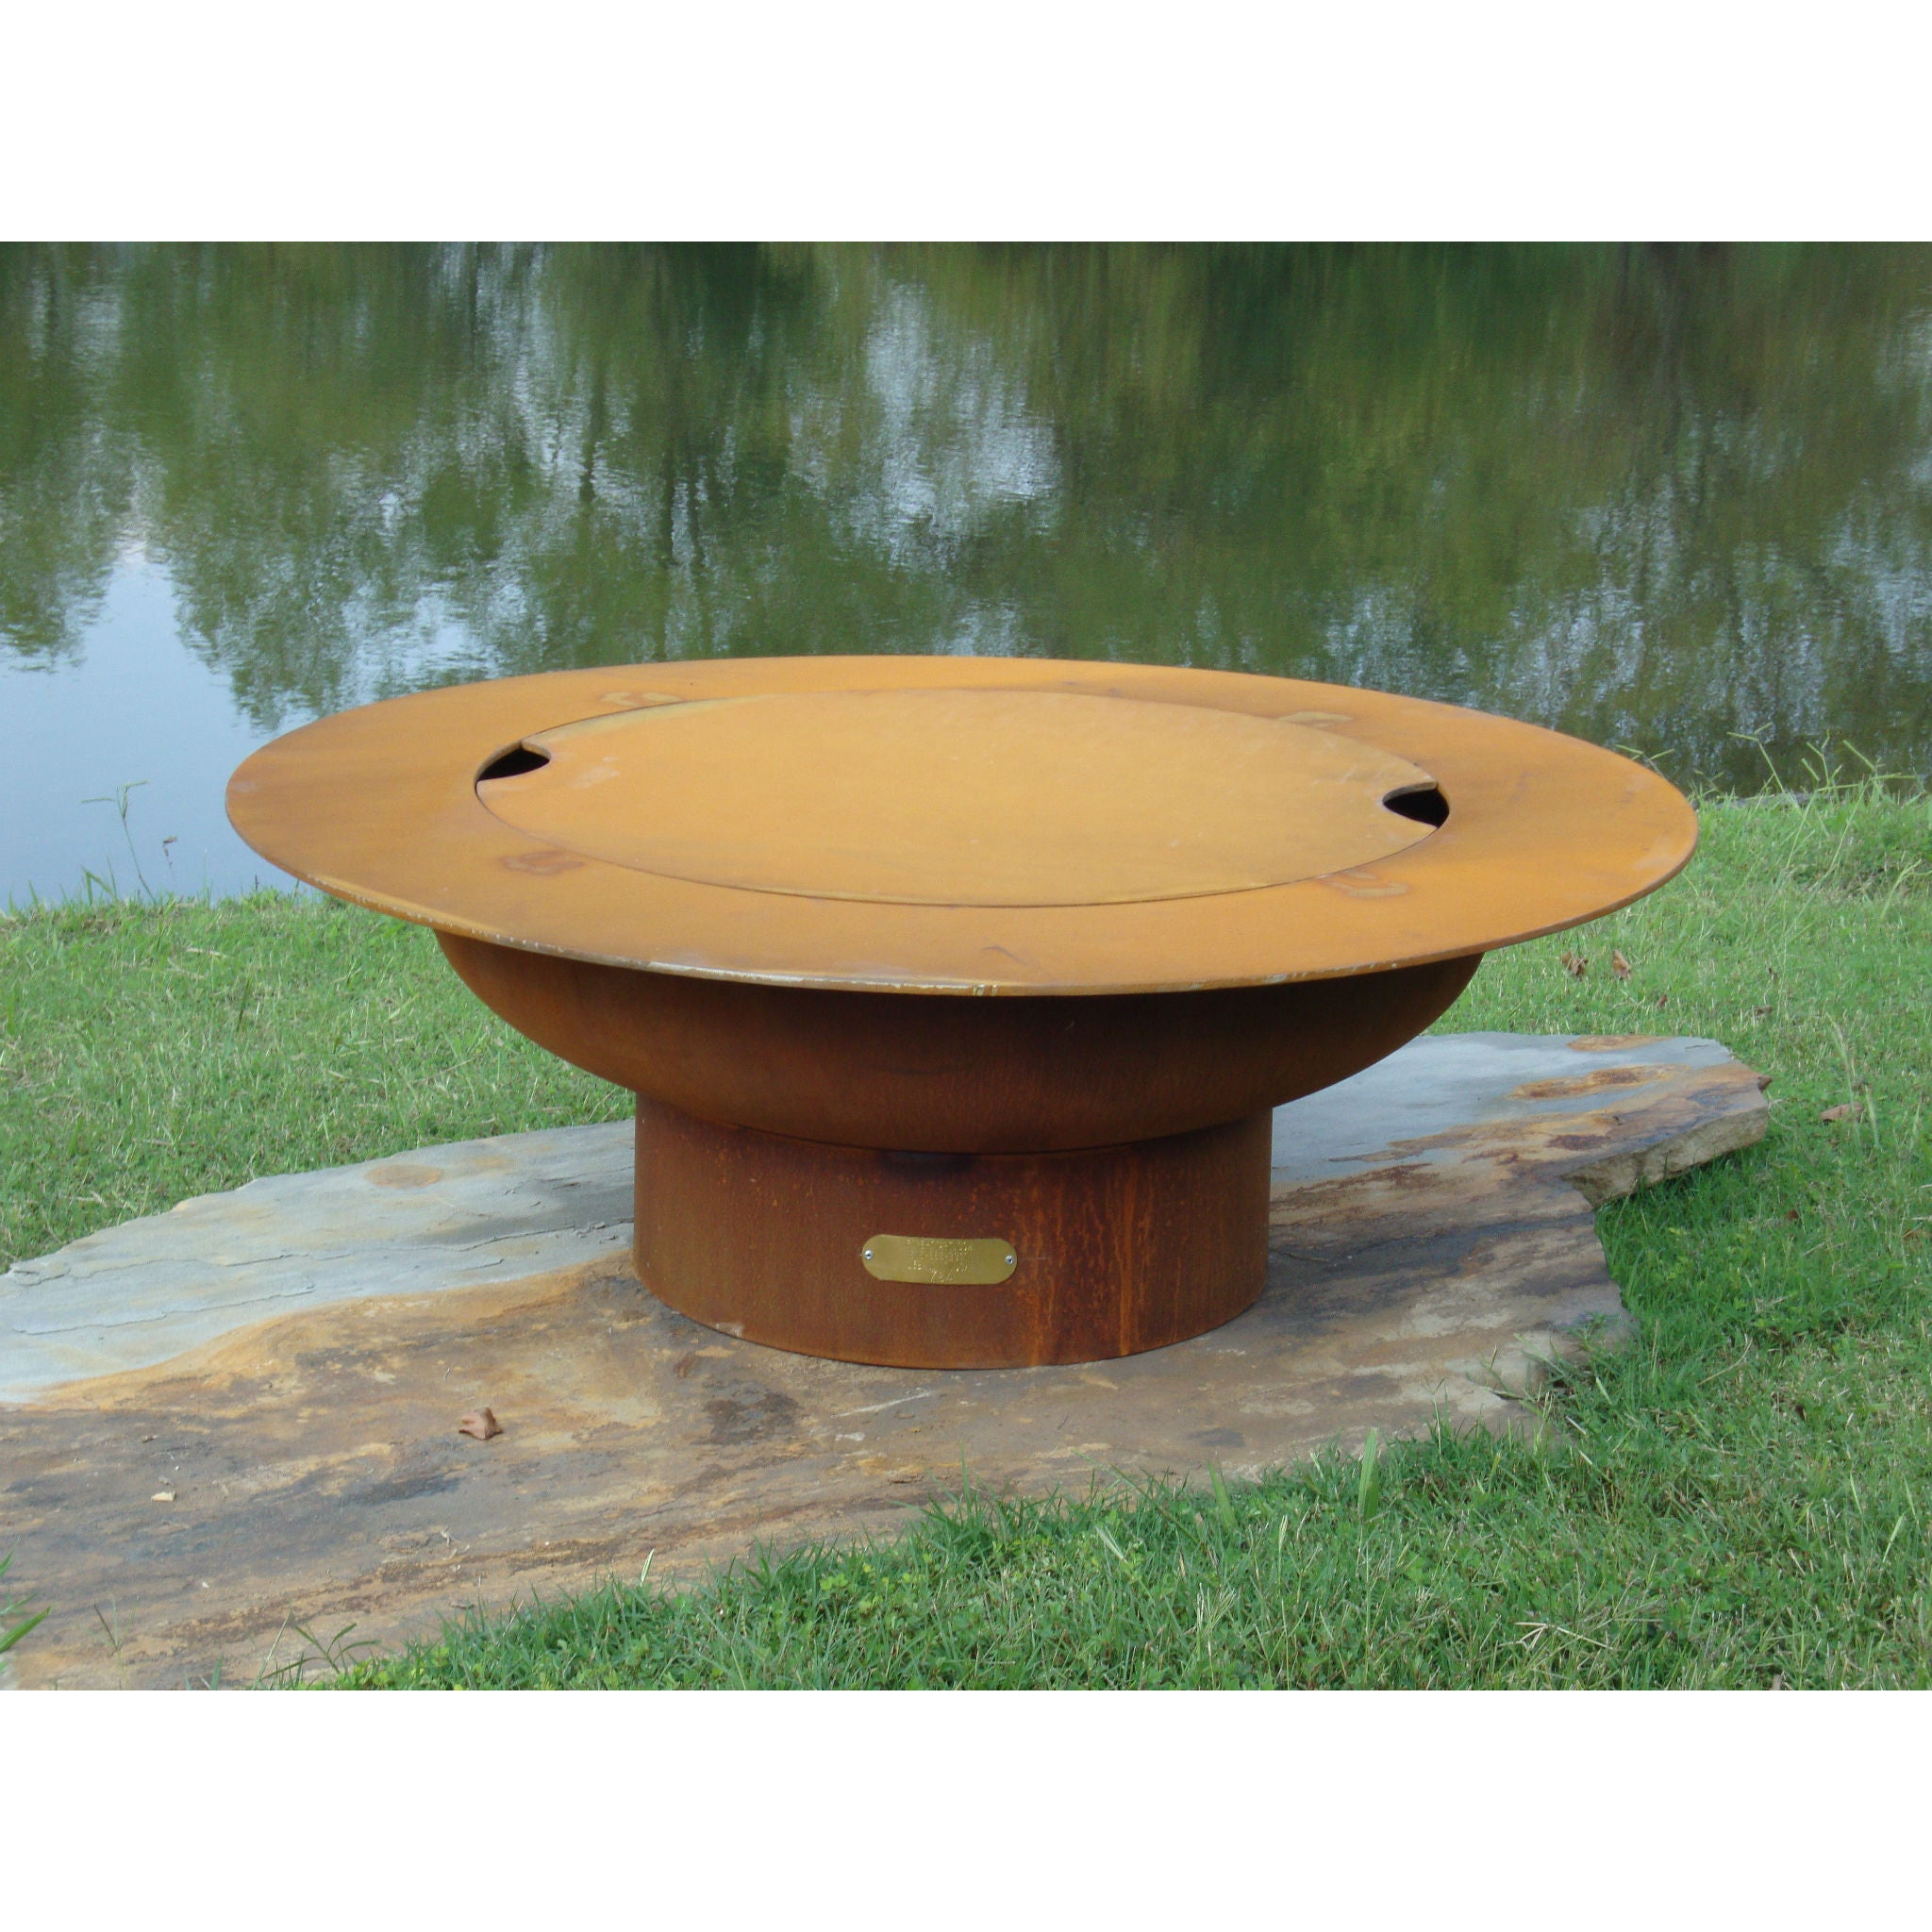 fire pit art saturn with lid wood burning fire pit sat lid